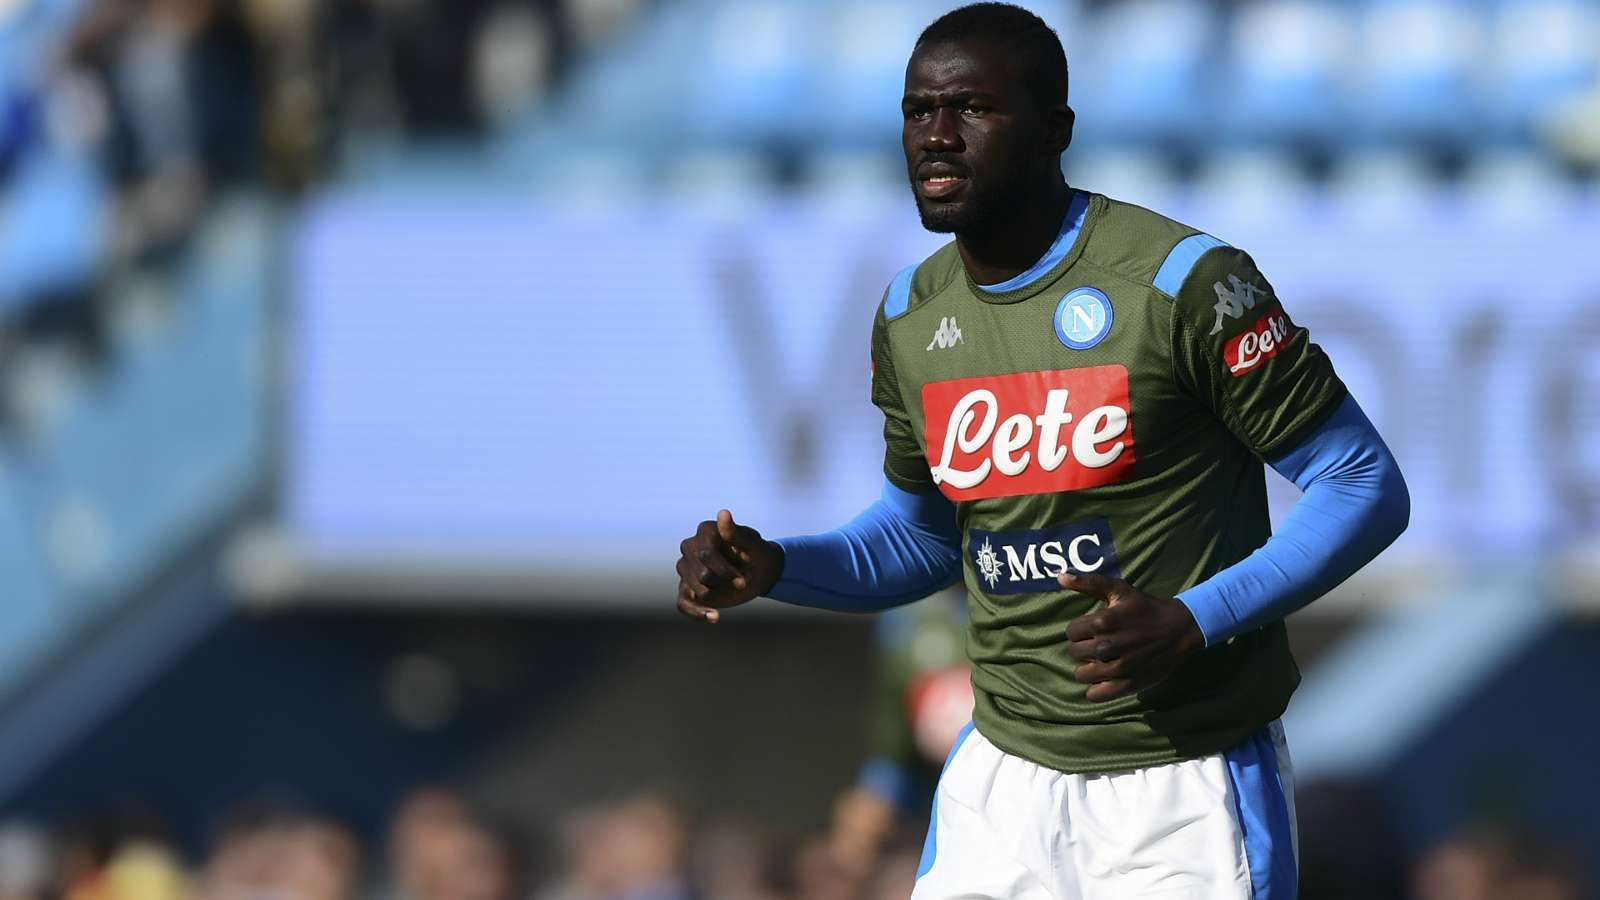 A Crazy Offer For Real Madrid For Koulibaly With Images Real Madrid Shoulder Injuries Andrea Pirlo